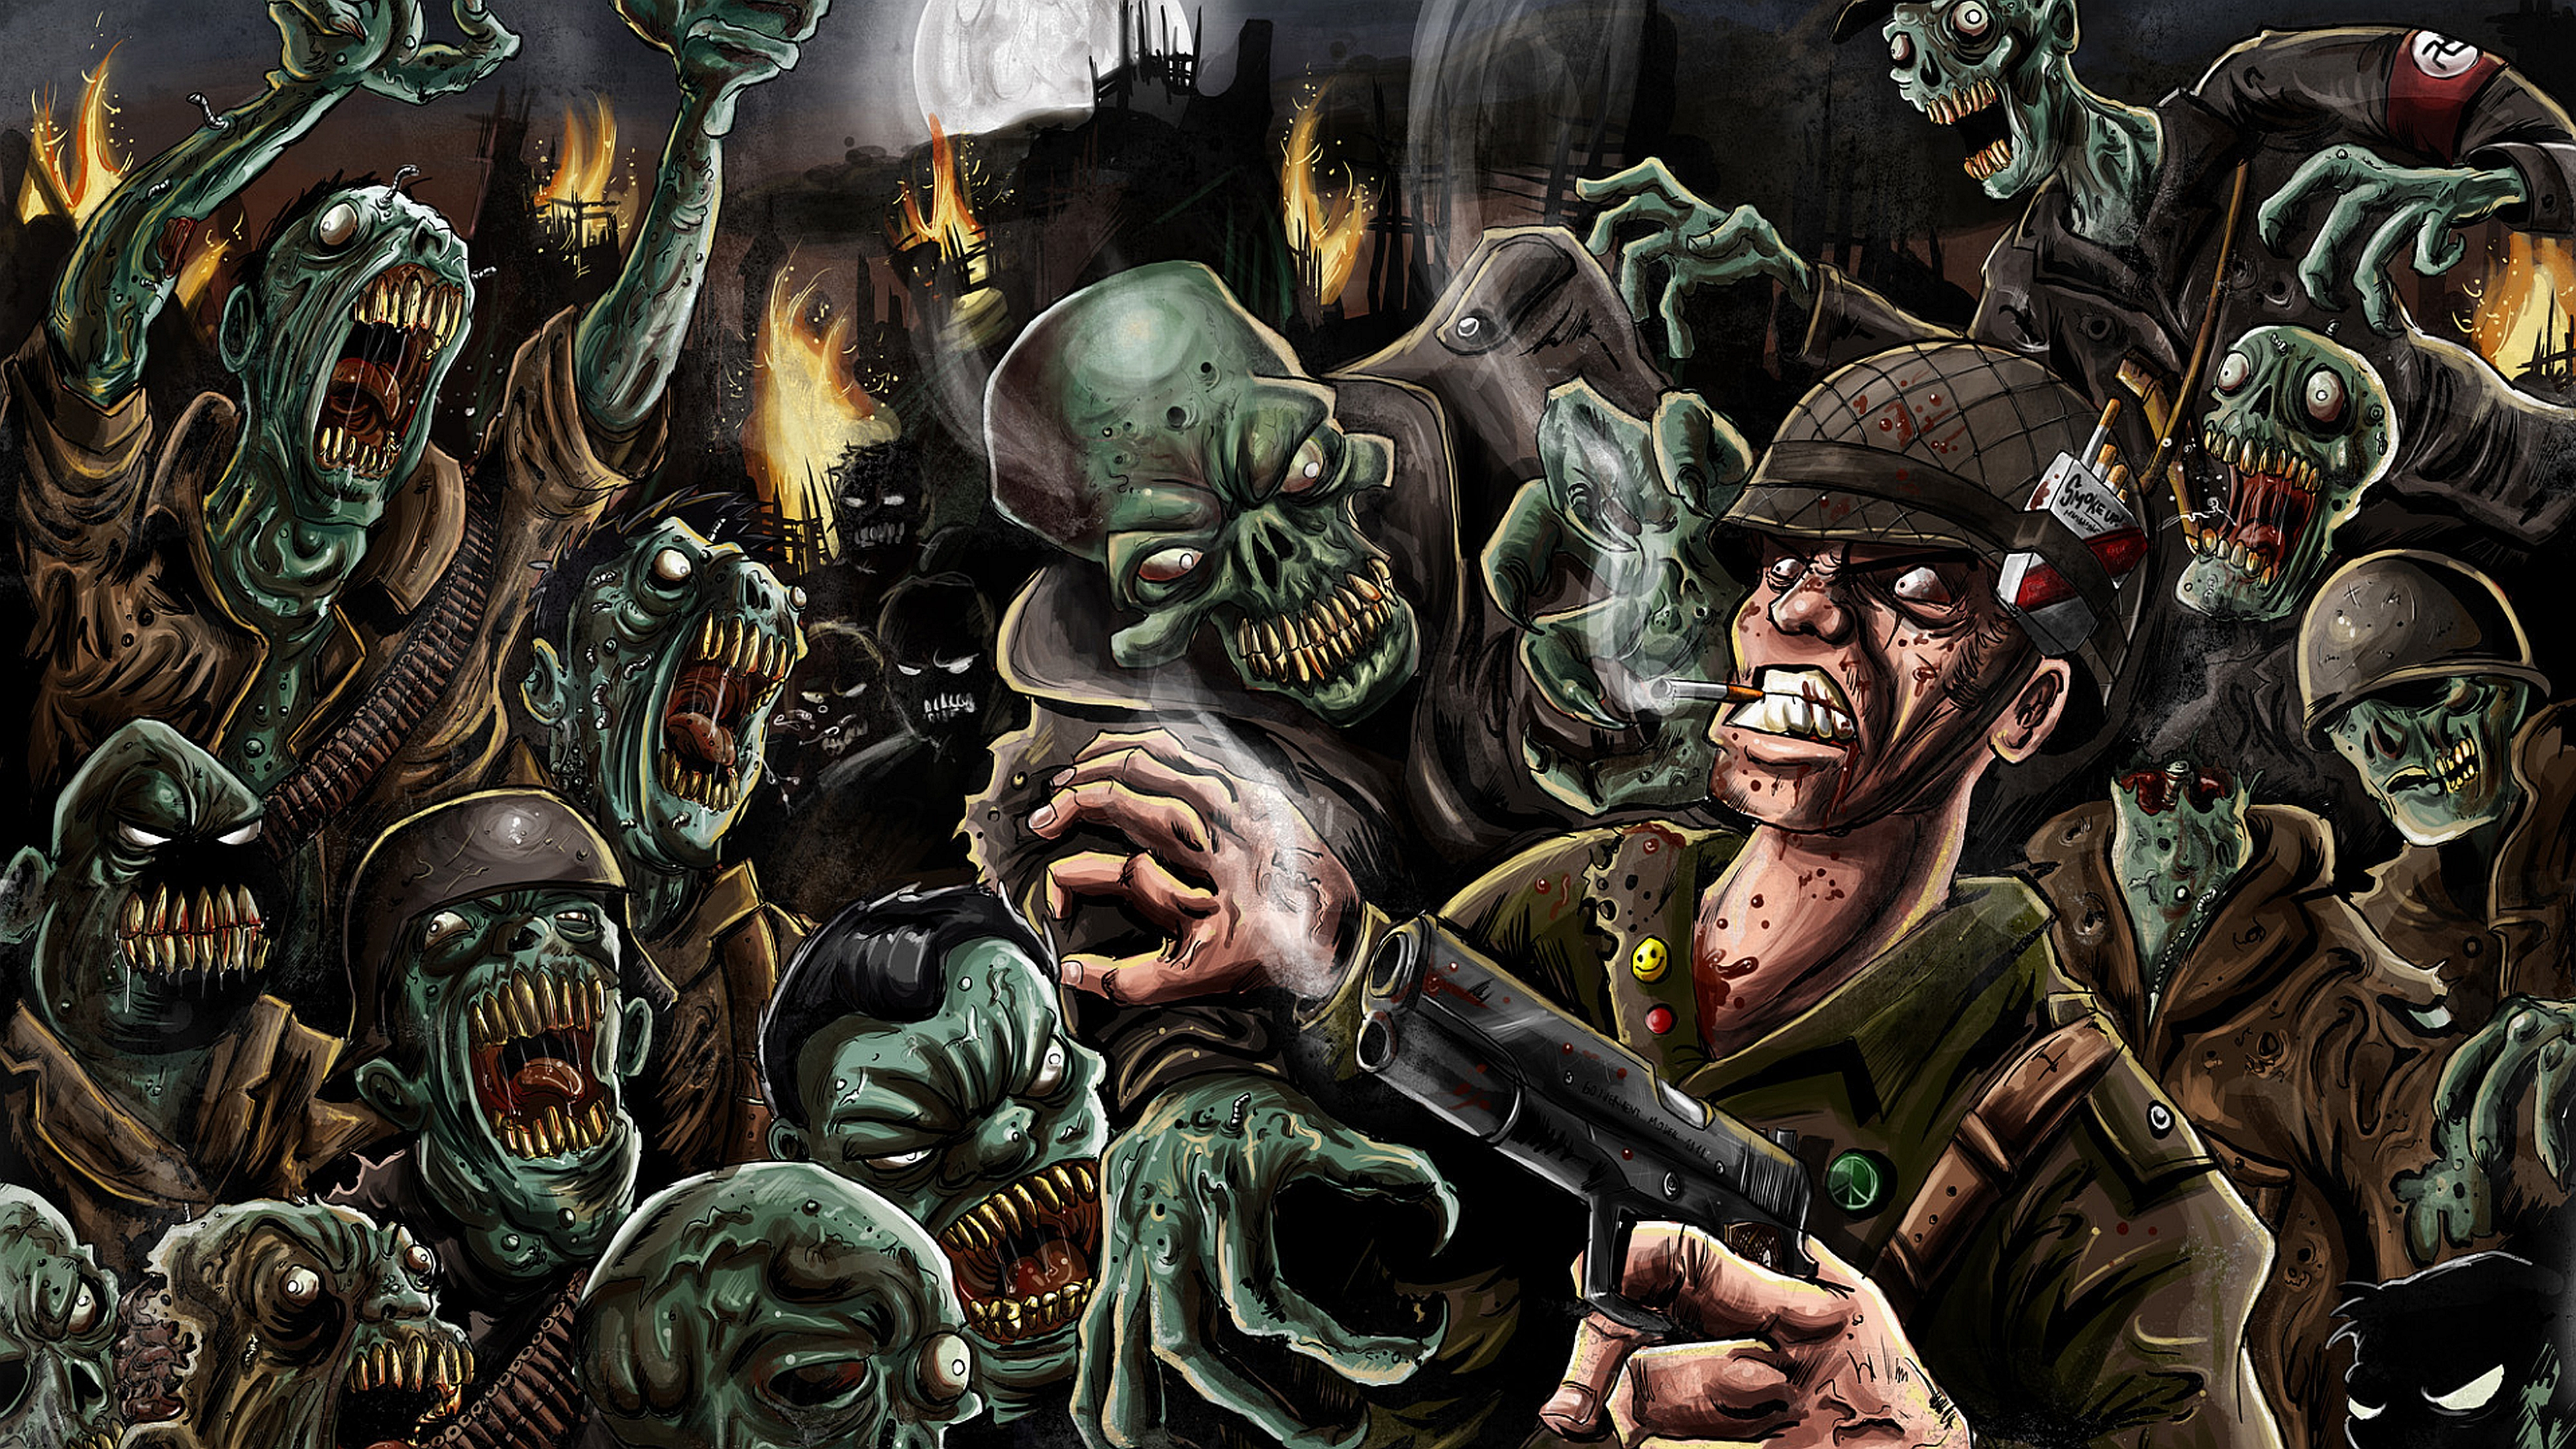 Wallpapers For Zombie Wallpaper Hd Cod Zombies 326611